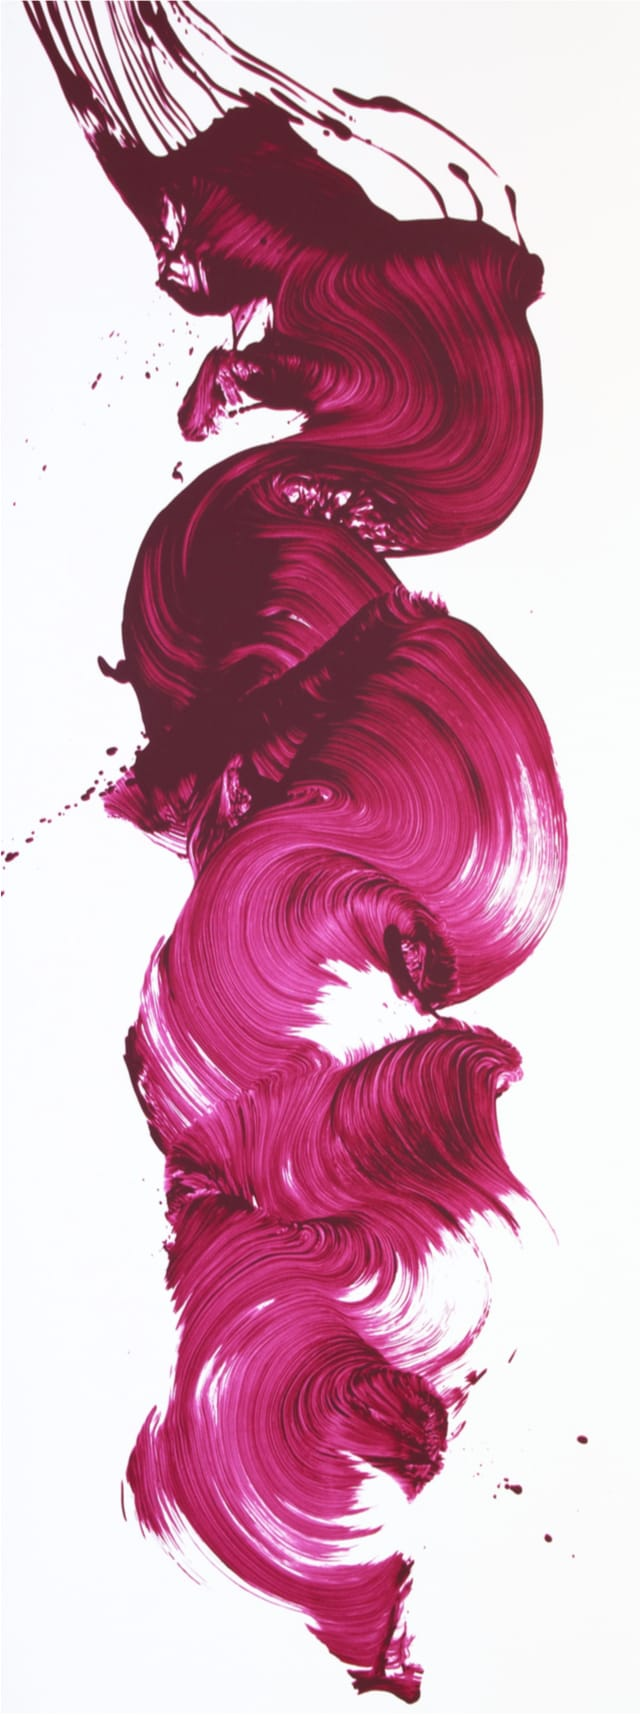 James Nares, Girl About Town, 2017